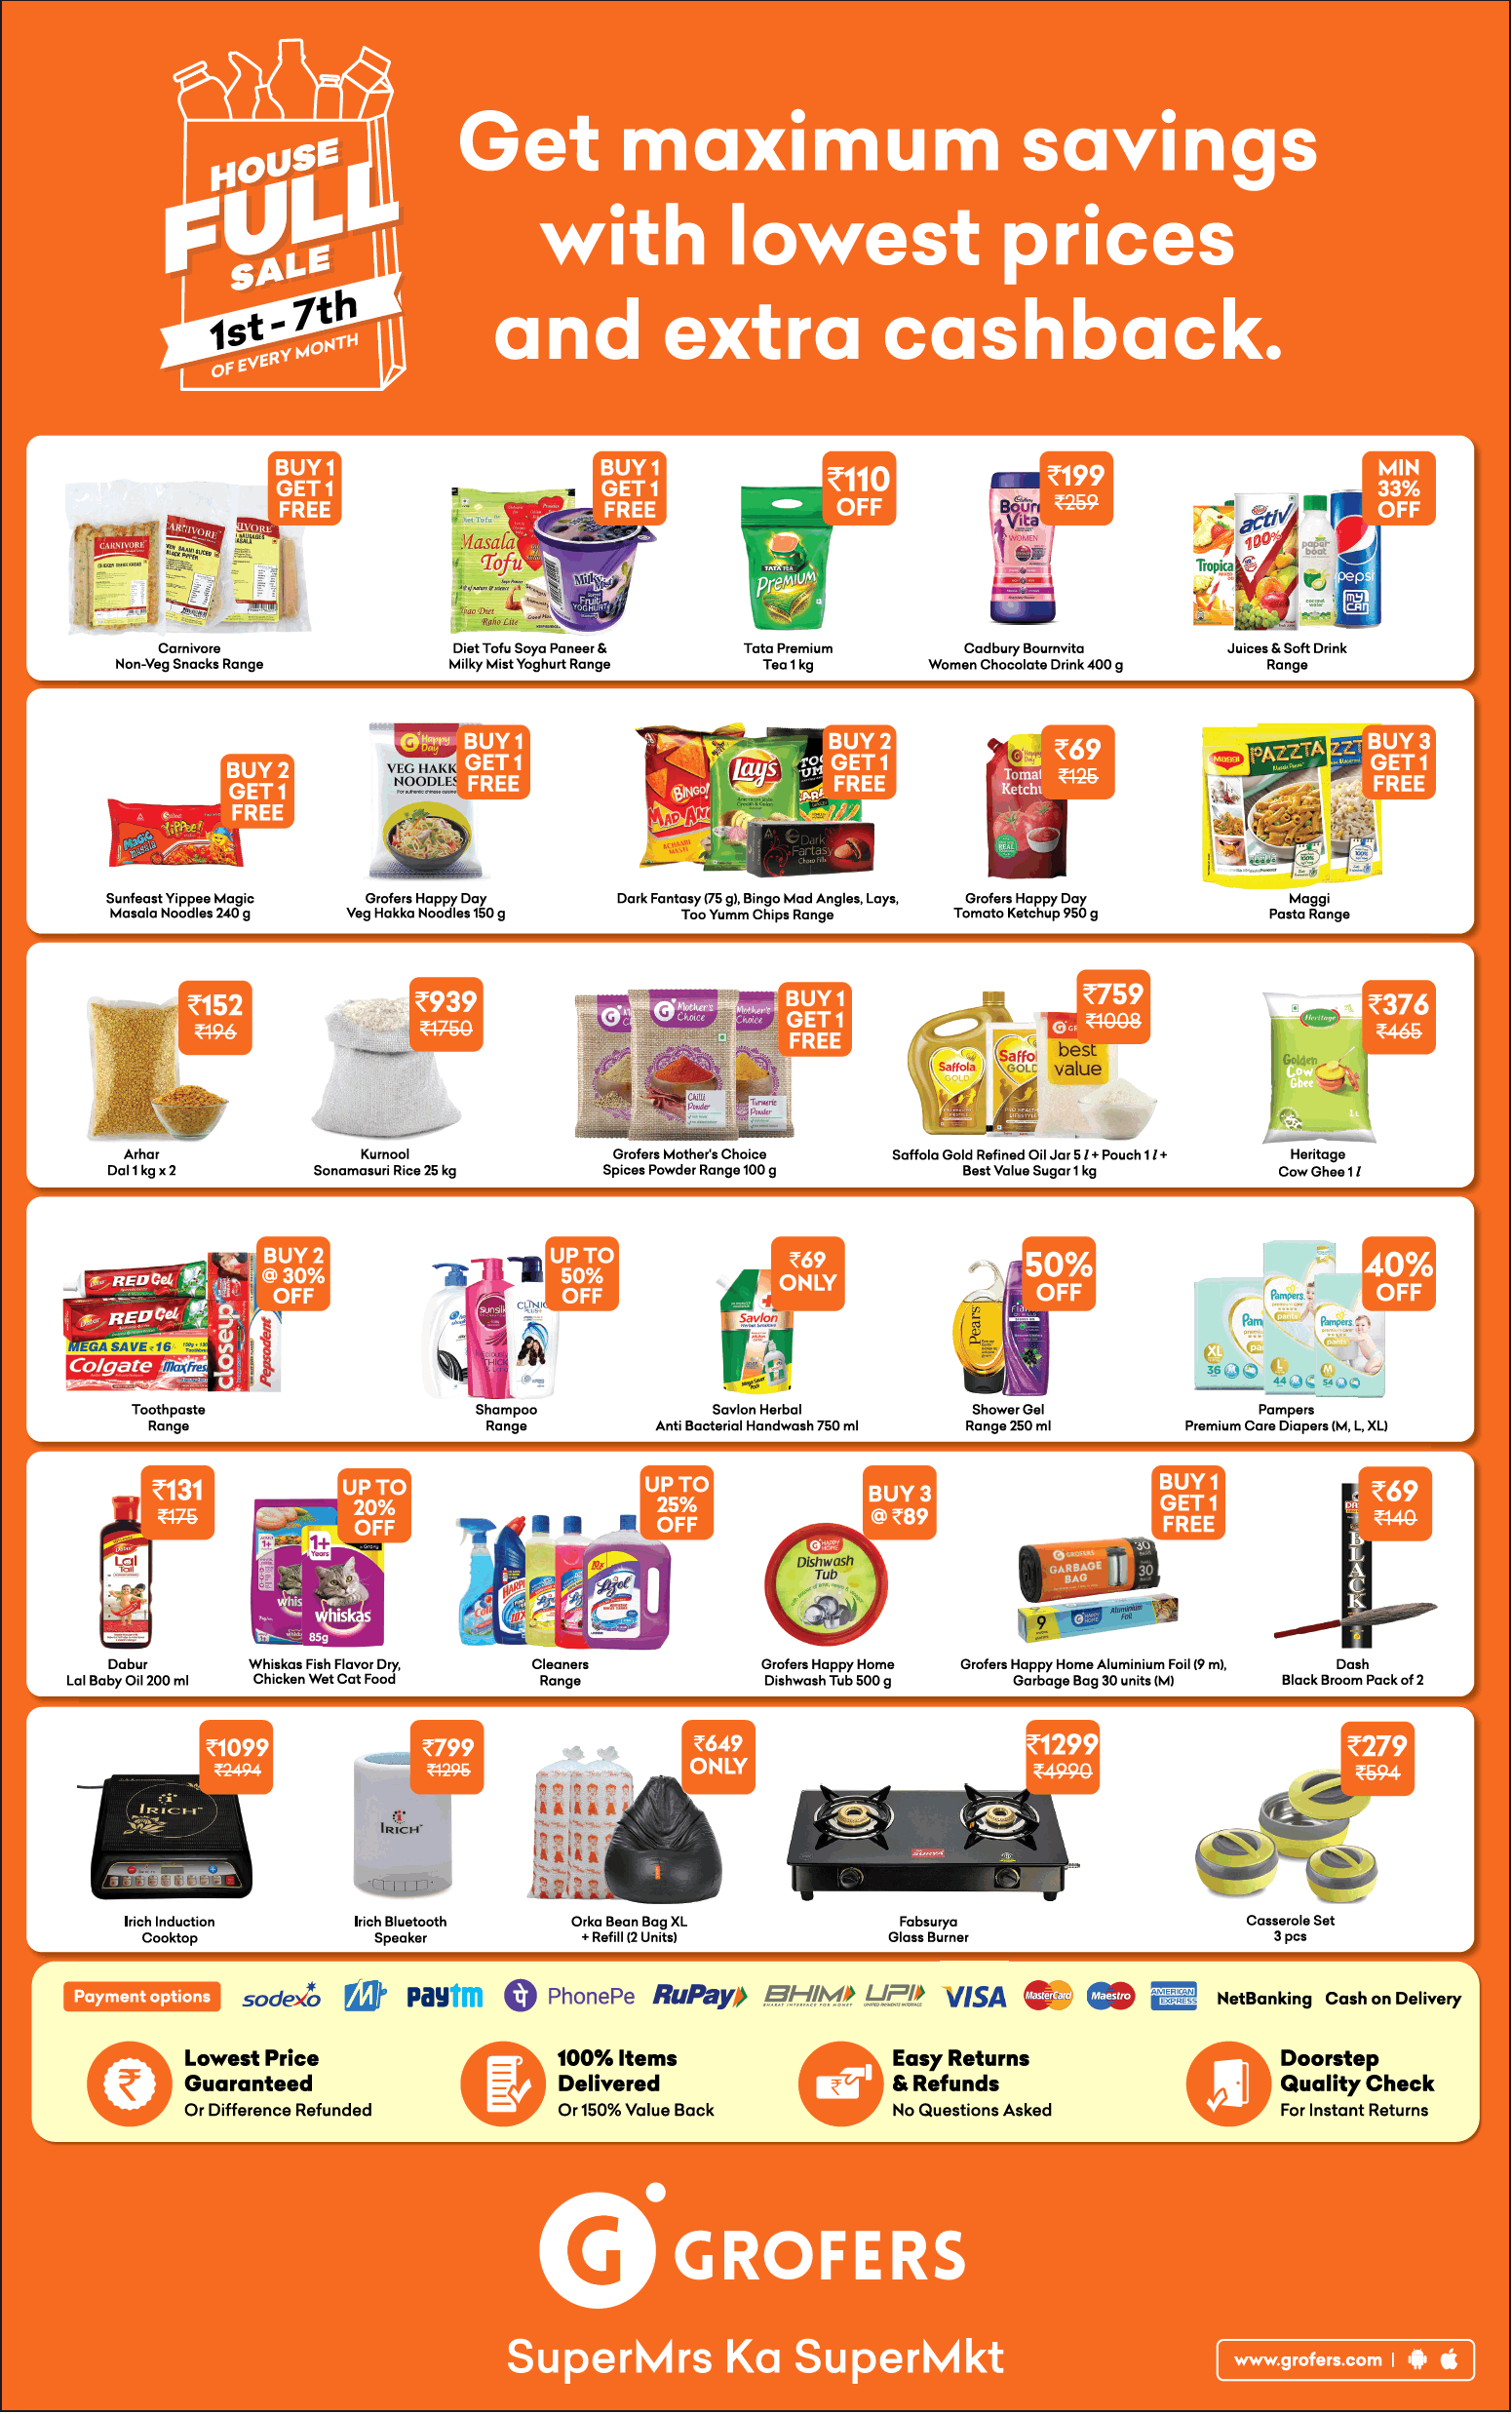 grofers-get-maximum-savings-with-lowest-prices-and-extra-cashback-ad-hyderabad-times-05-01-2019.png